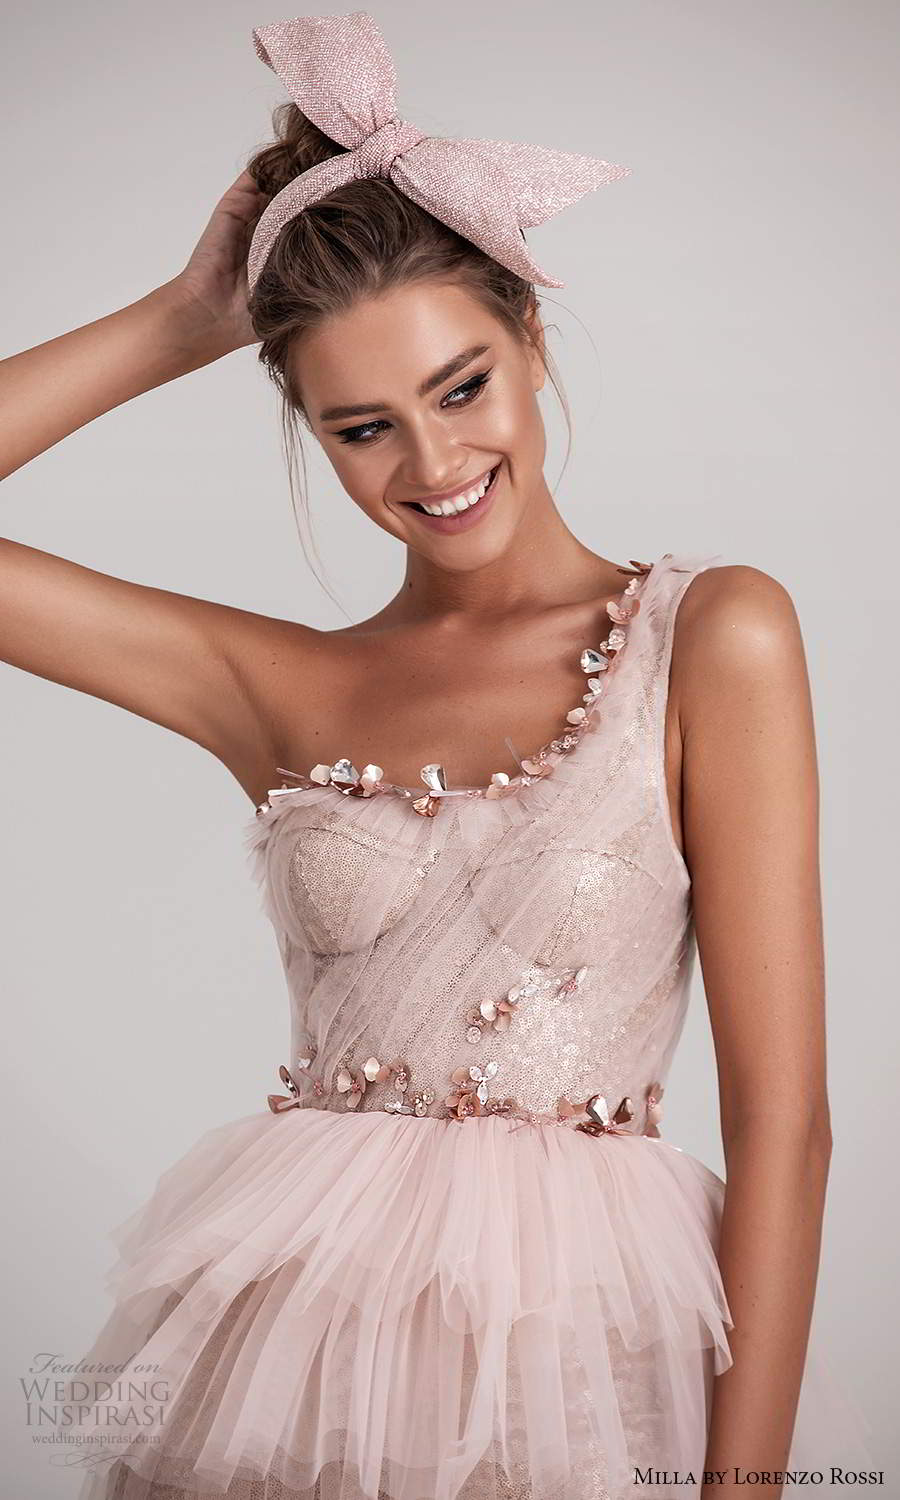 milla by lorenzo rossi 2020 rtw one shoulder straps sweetheart neckline ruched bodice embellished a line dress ruffle tier skirt pink blush (21) zv